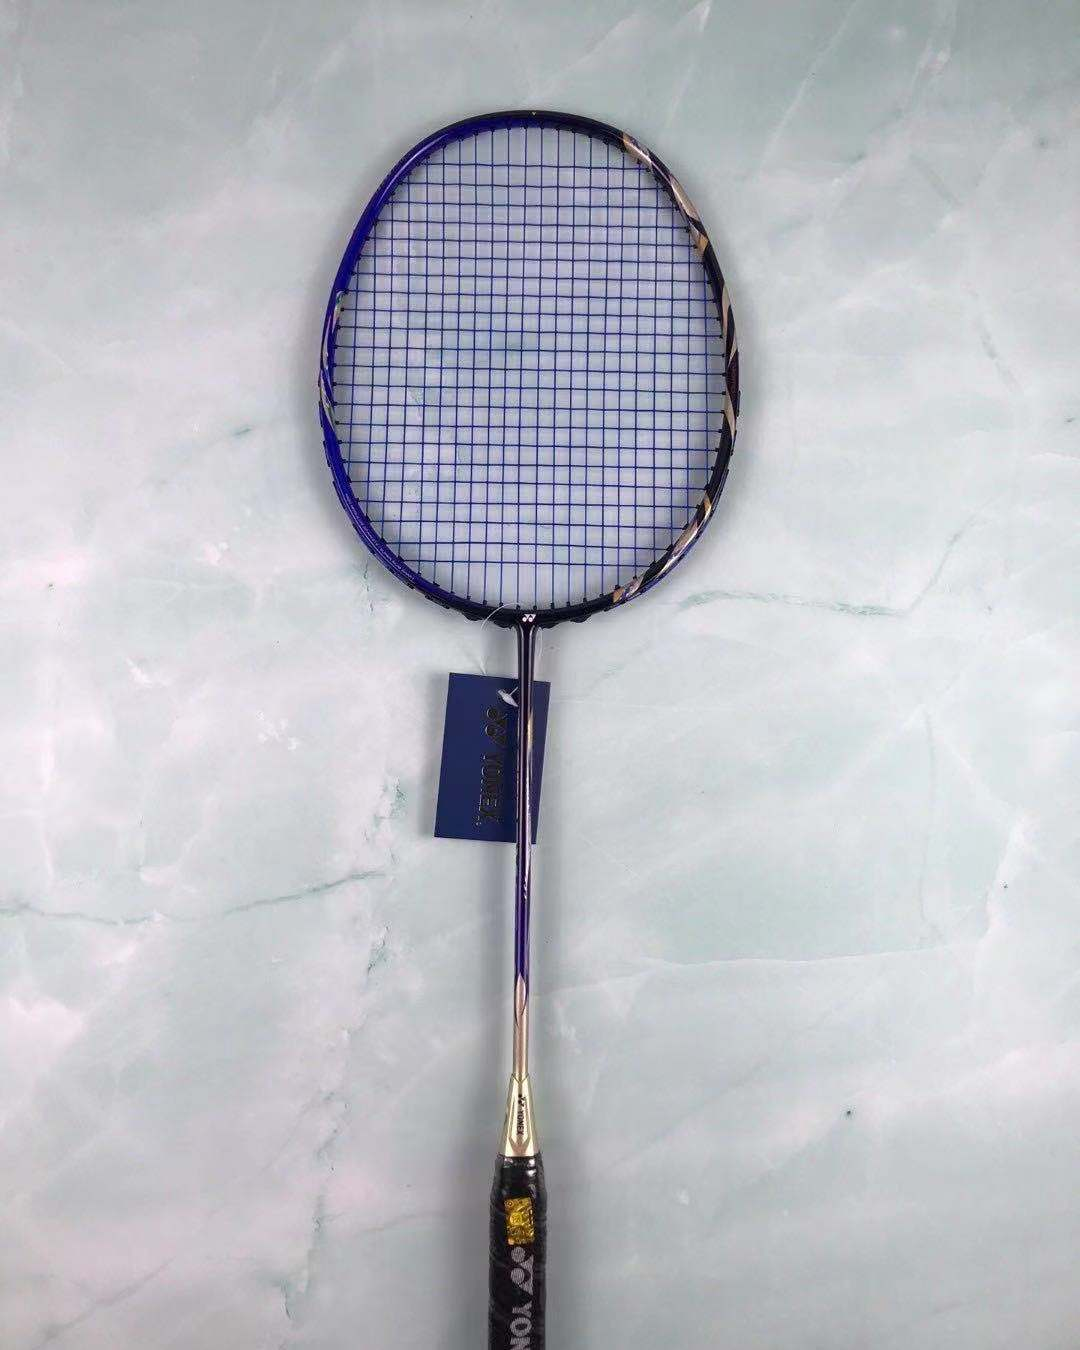 YY badminton racket sky axe 99 royal blue ultra-light full carbon single shot